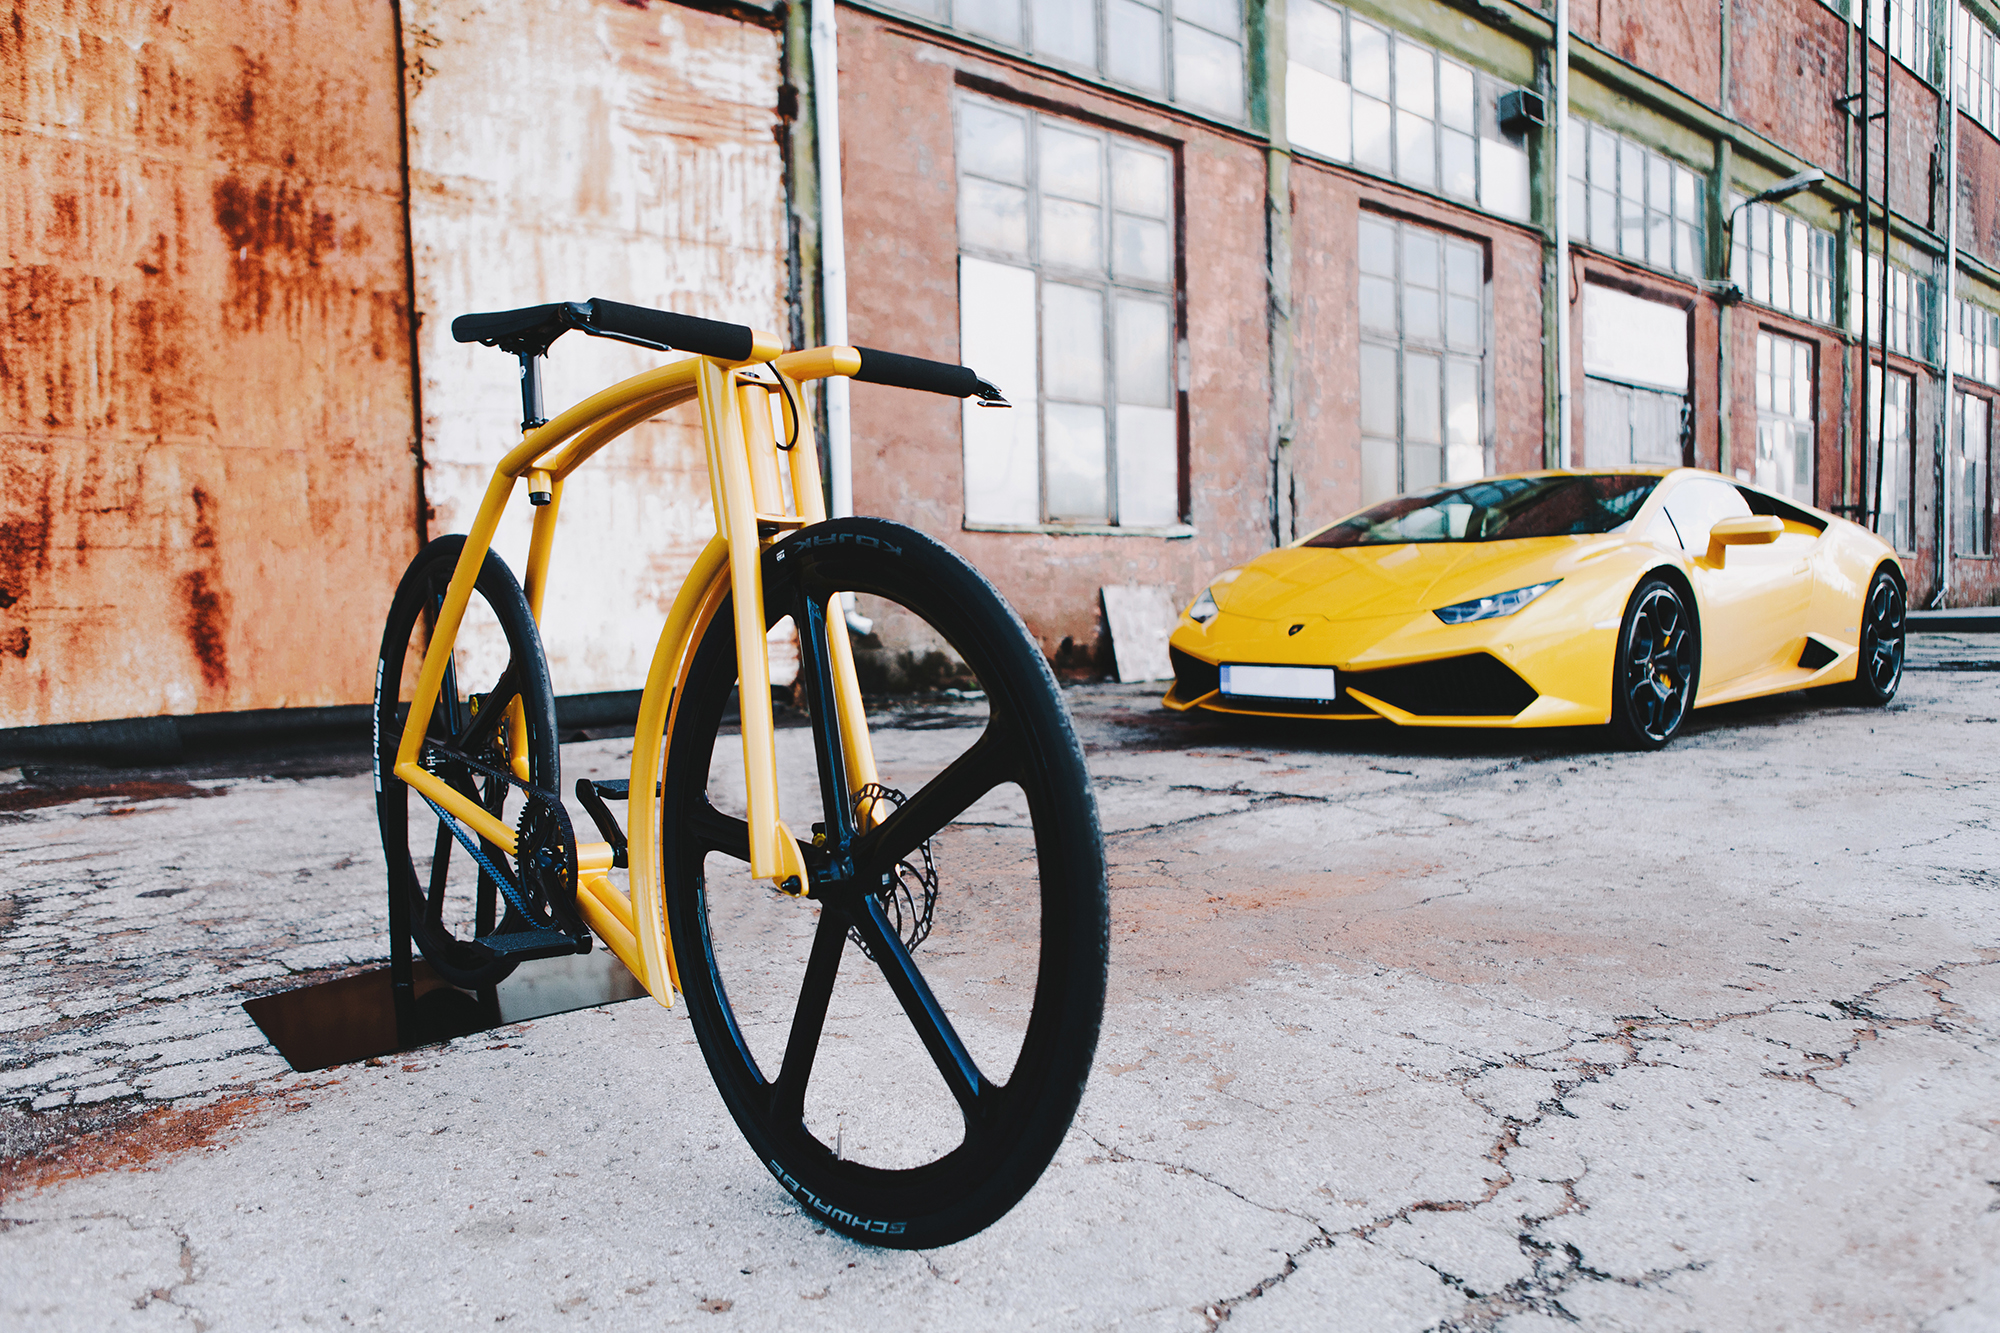 Meet Viks Gt A Commuter Inspired By Italian Supercars Viks